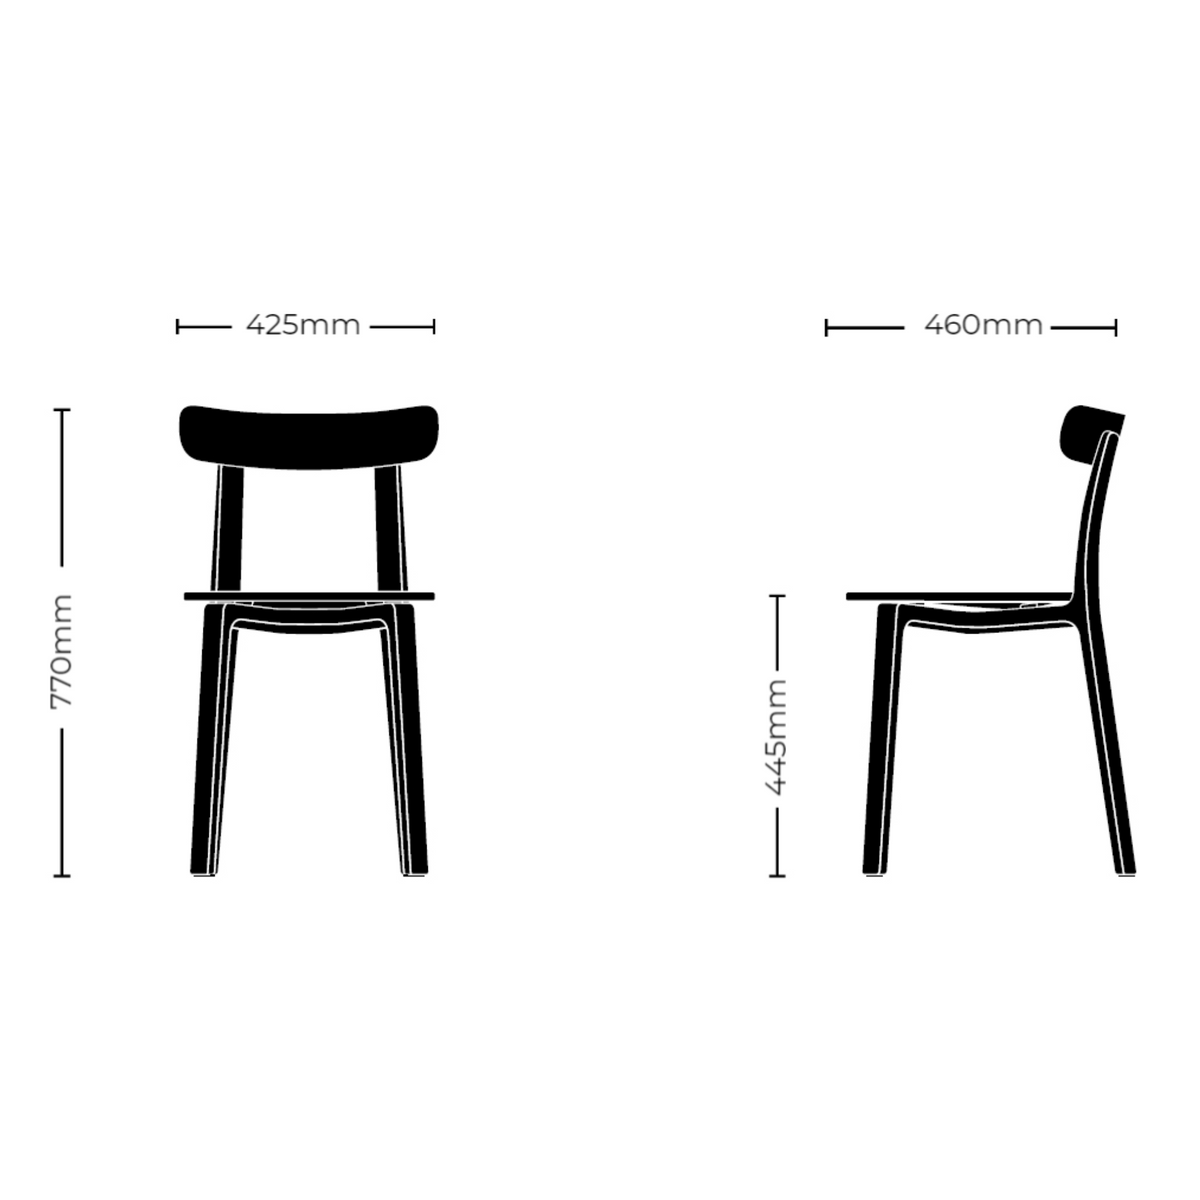 Dimensions for Vitra Office All Plastic Chair by Jasper Morrison